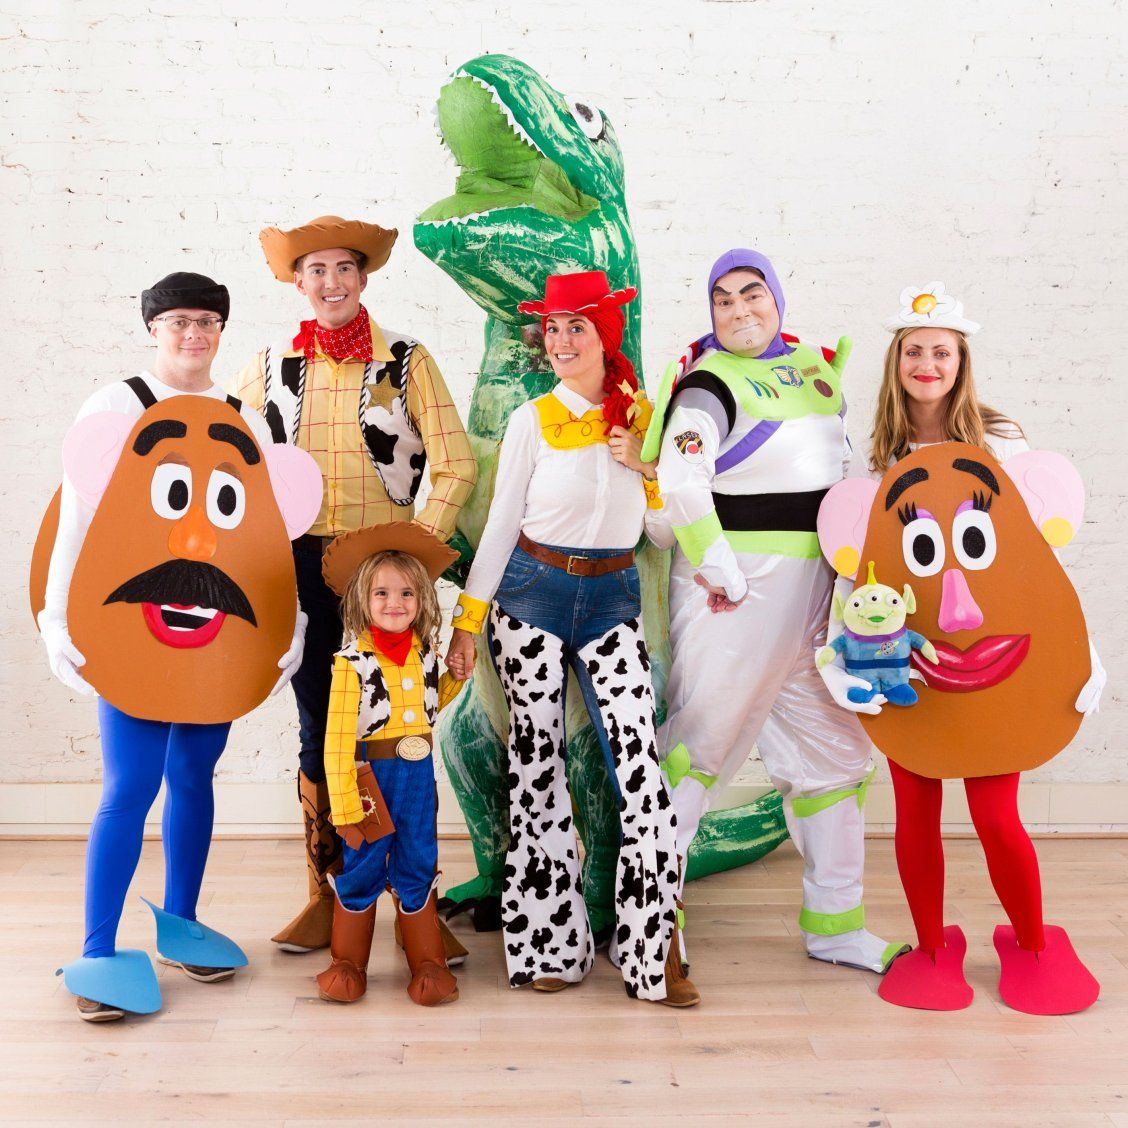 Reach for the Sky With This 'Toy Story' Group Halloween Costume #grouphalloweencostumes